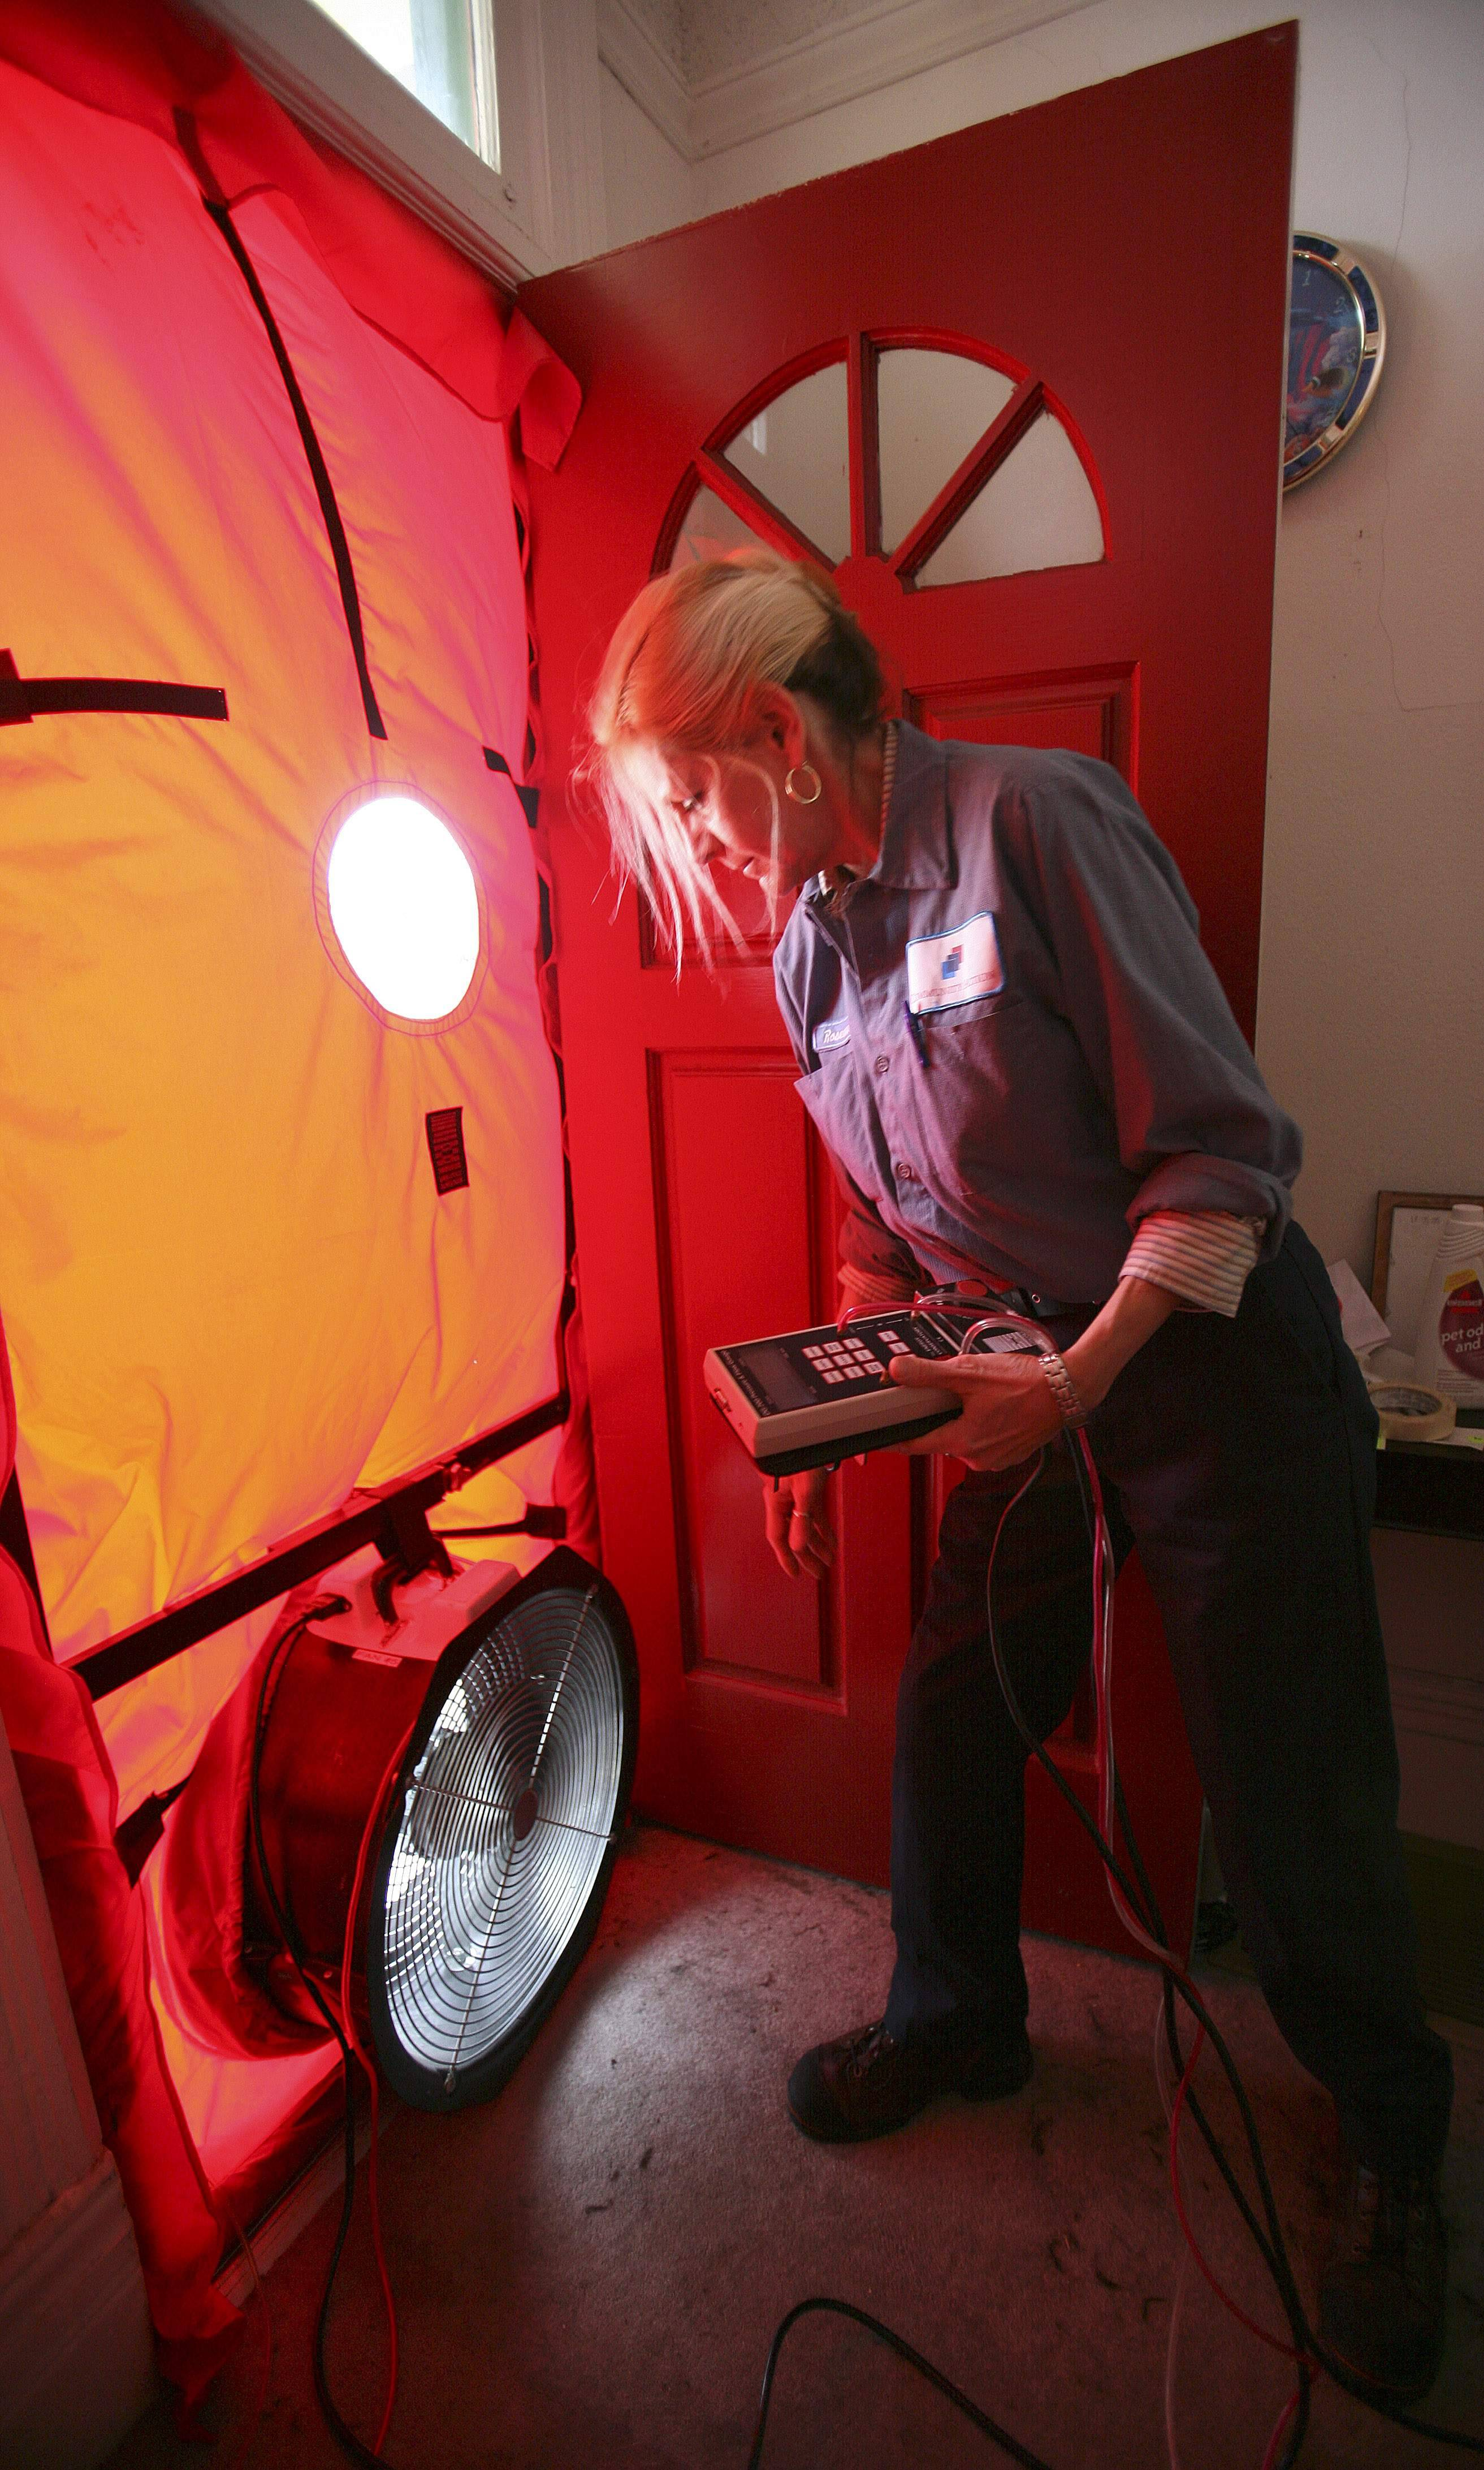 Roseann Mitchell of the Community Action Agency checks airflow readings as part of a blower door test assessment in San Francisco. Electricity prices are expected to rise faster this year than they have since 2009, to a record average of 12.5 cents per kilowatt-hour, according to the Energy Department. And prices are highest in the summer, just when you need more power to run the air conditioner.